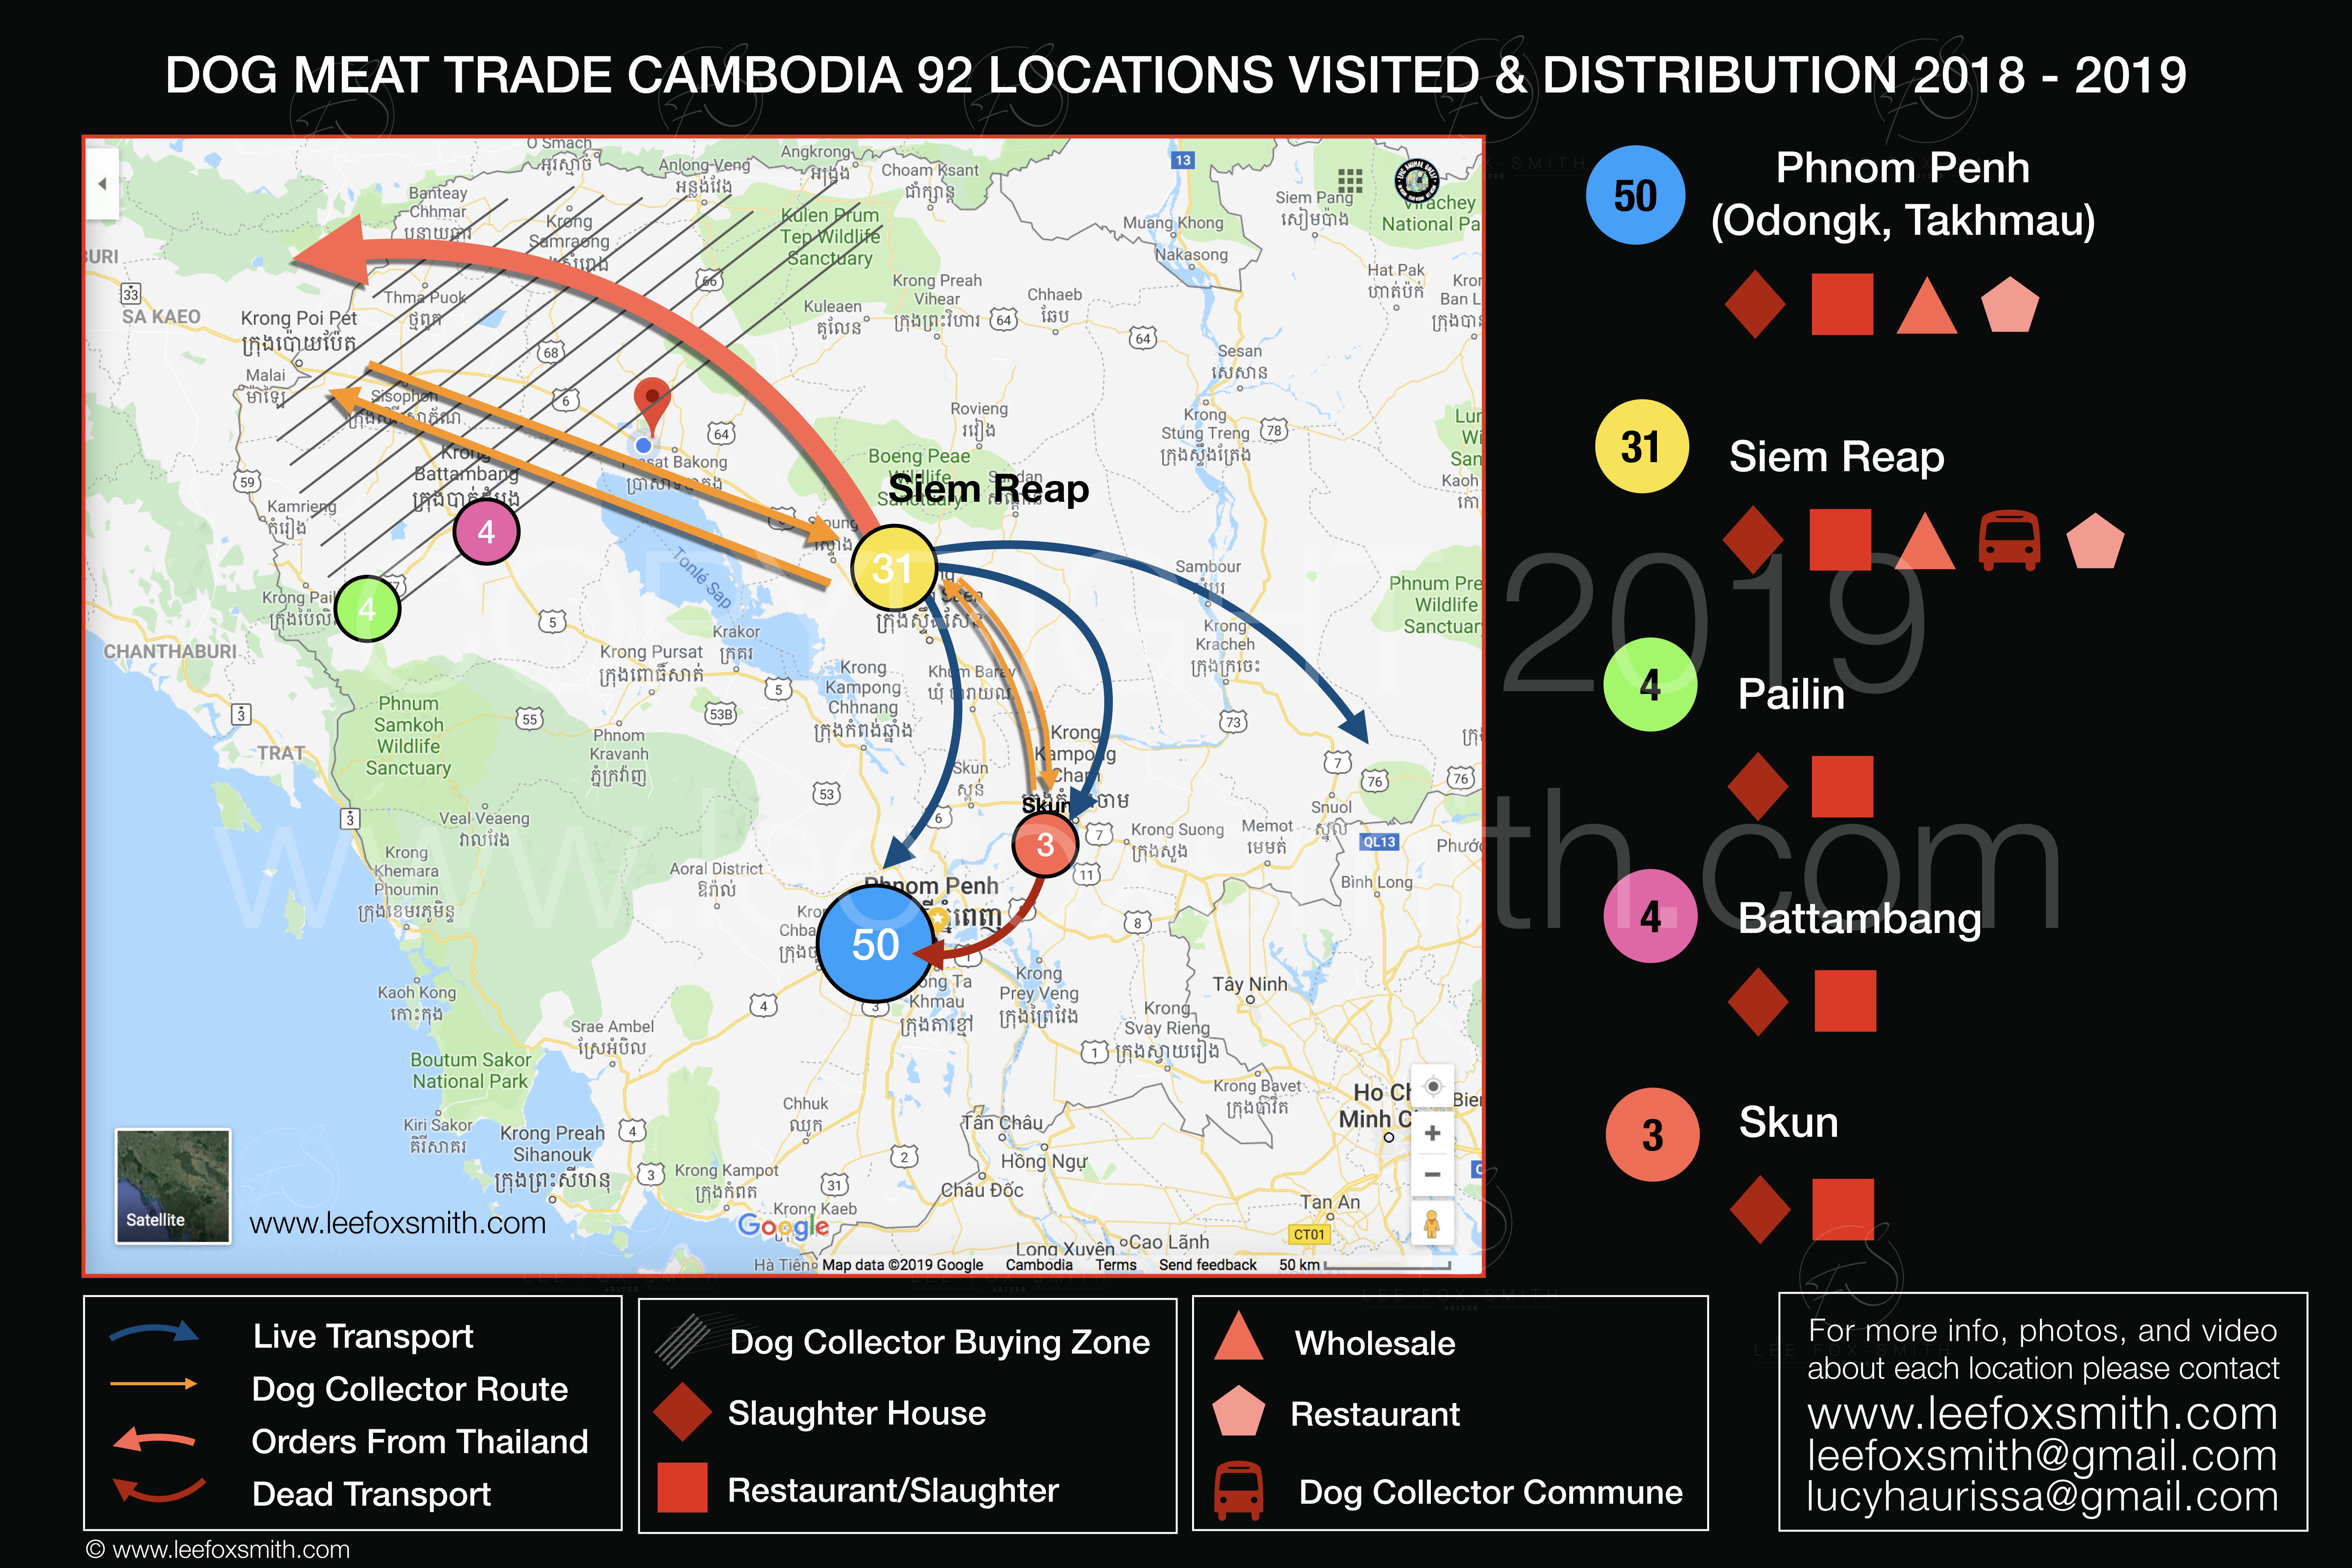 Dog Meat Trade Cambodia Map Distribution and 92 Locations ... Map Cambodia on el salvador map, syria map, indochina map, chad map, city map, burma map, phillipines map, china map, cameroon map, congo map, west indies map, bangladesh map, africa map, korea map, qatar map, burundi map, martinique map, europe map, japan map, benin map, da nang map, bulgaria map, bhutan map, pacific islands map, east timor map, eritrea map,